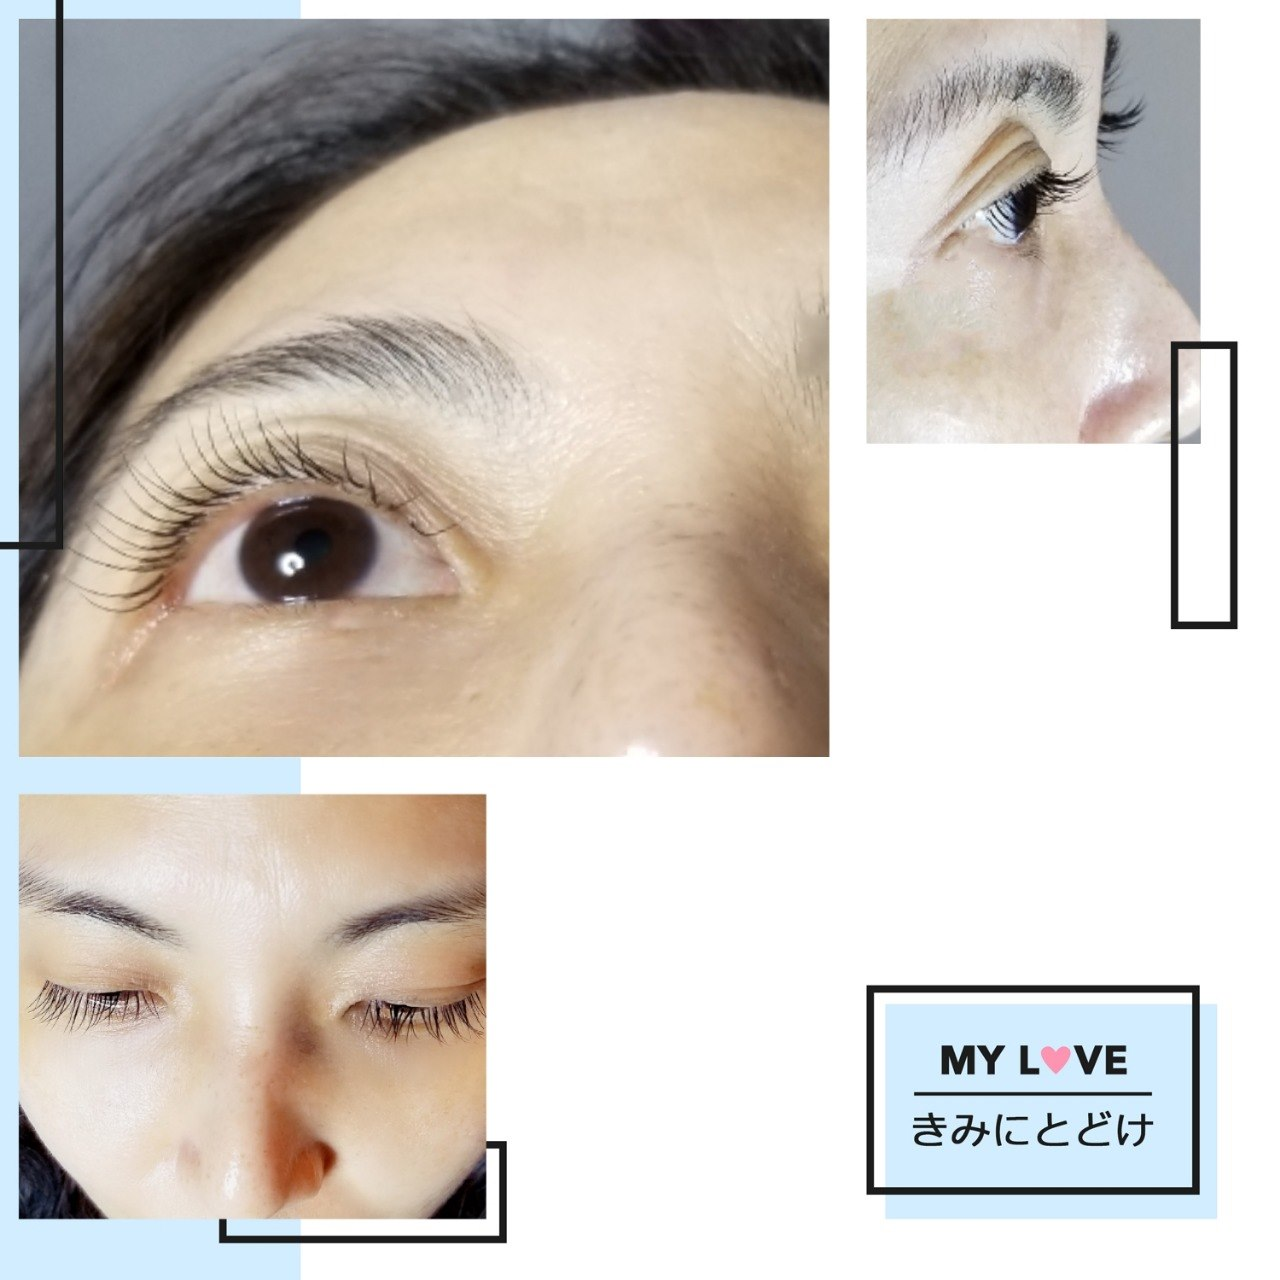 MY L VE きみにとどけ  Eyebrow,Face,Skin,Eyelash,Nose